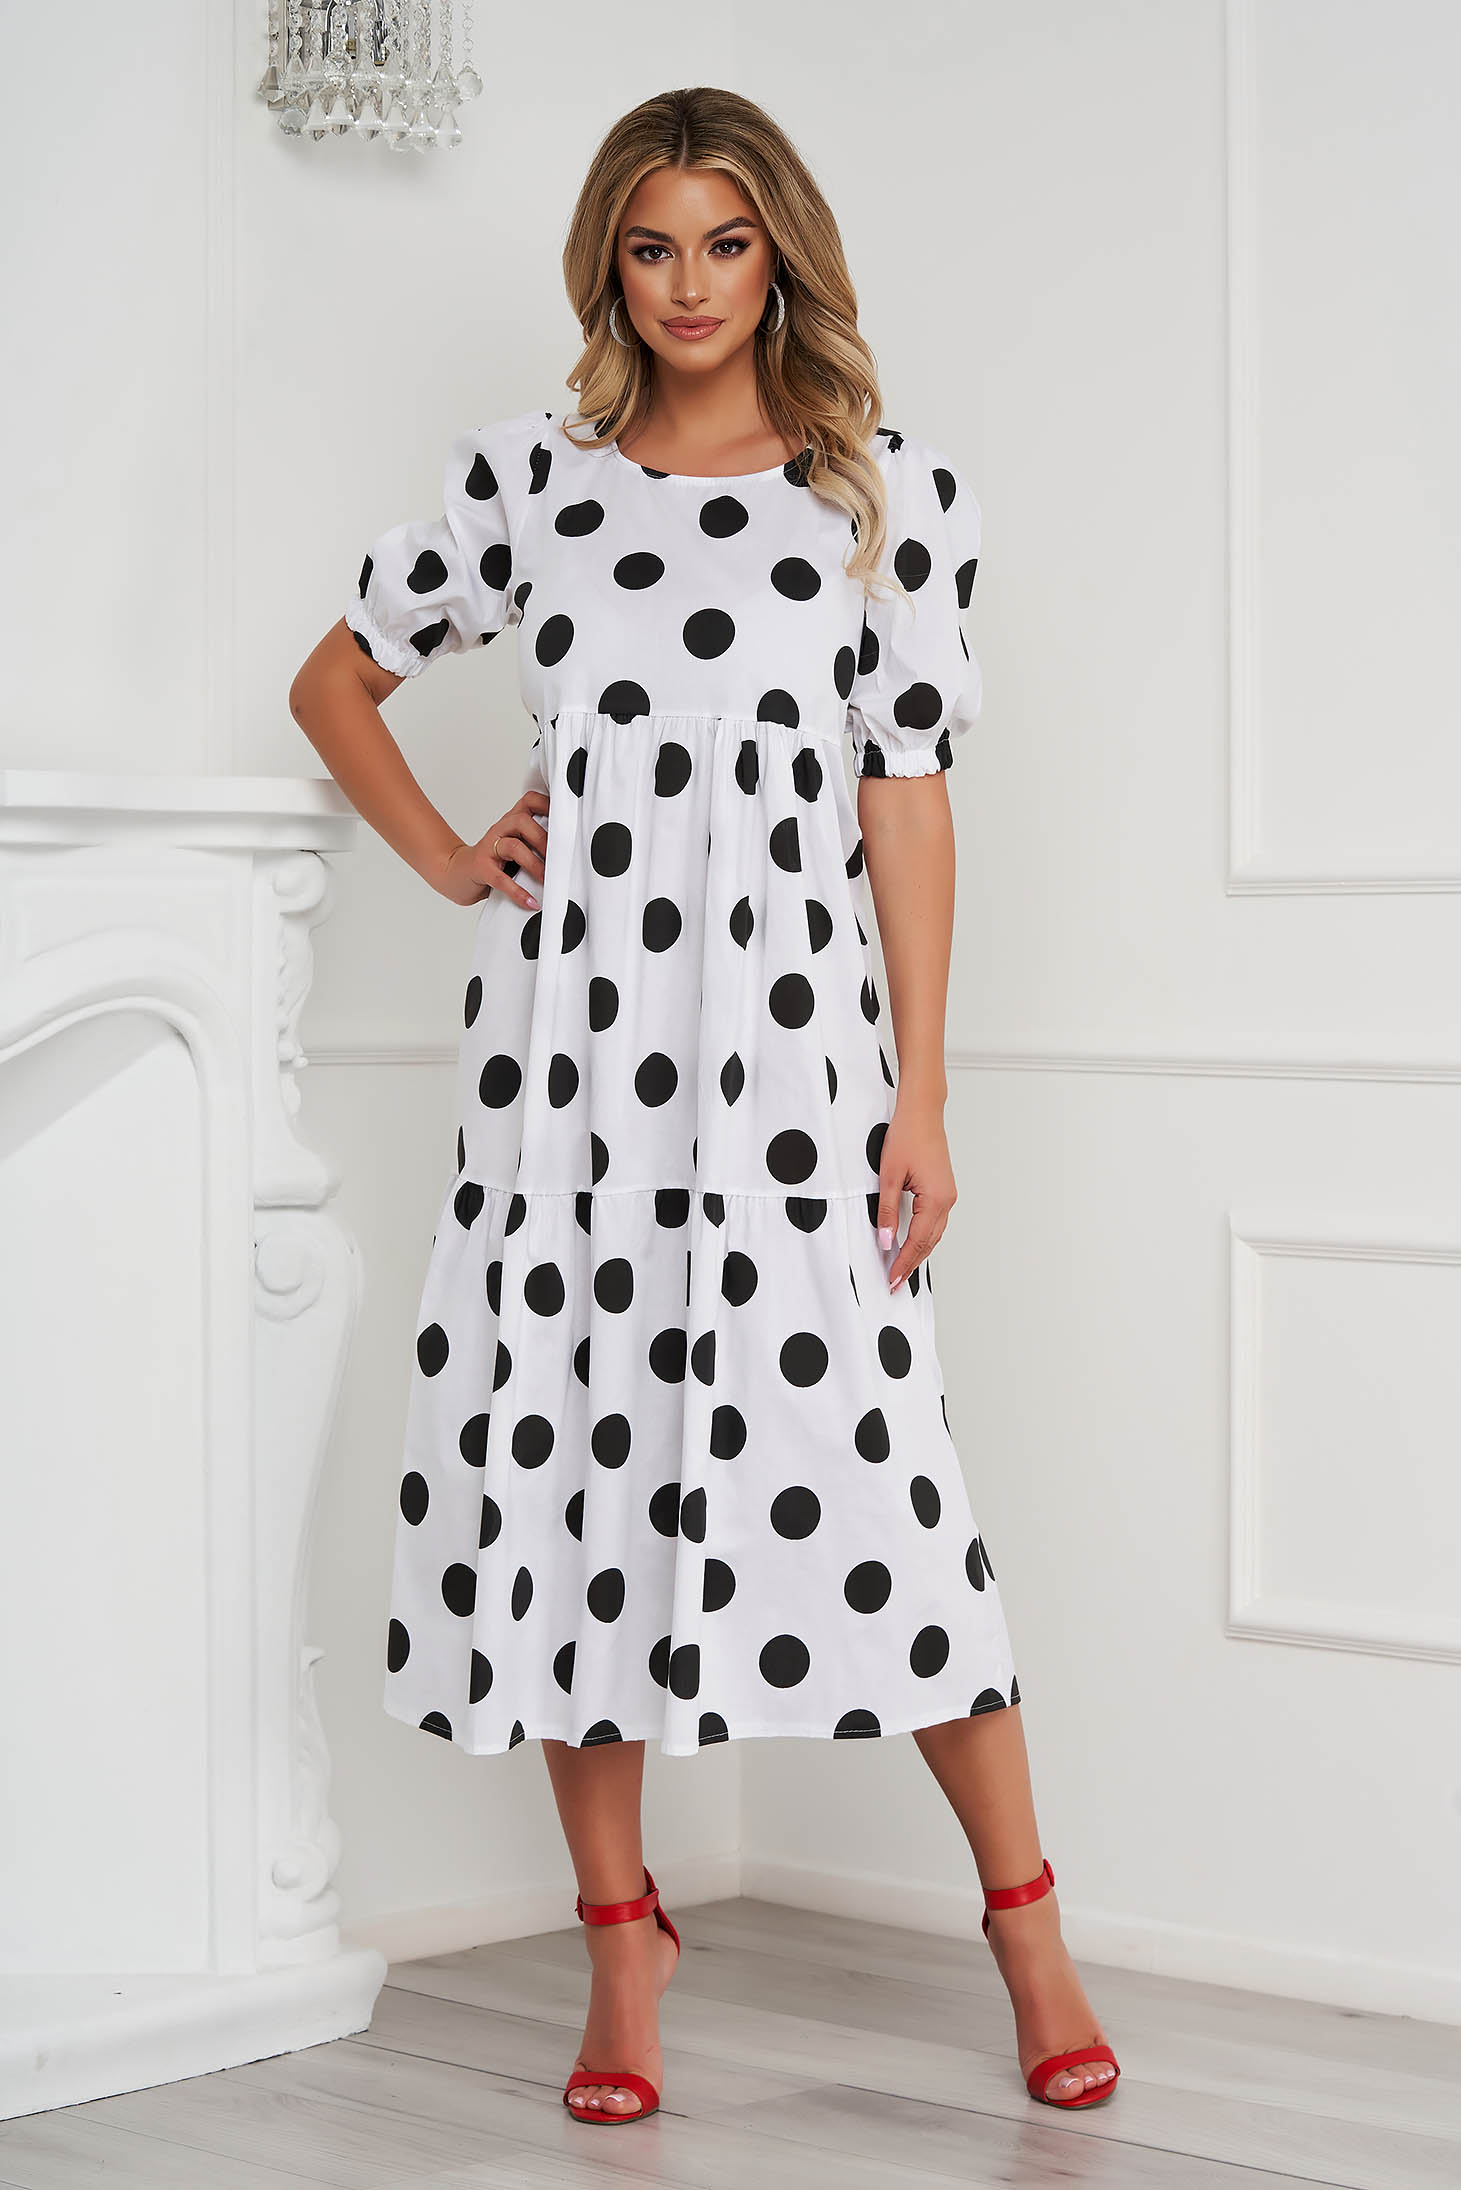 Black dress dots print loose fit with ruffle details airy fabric